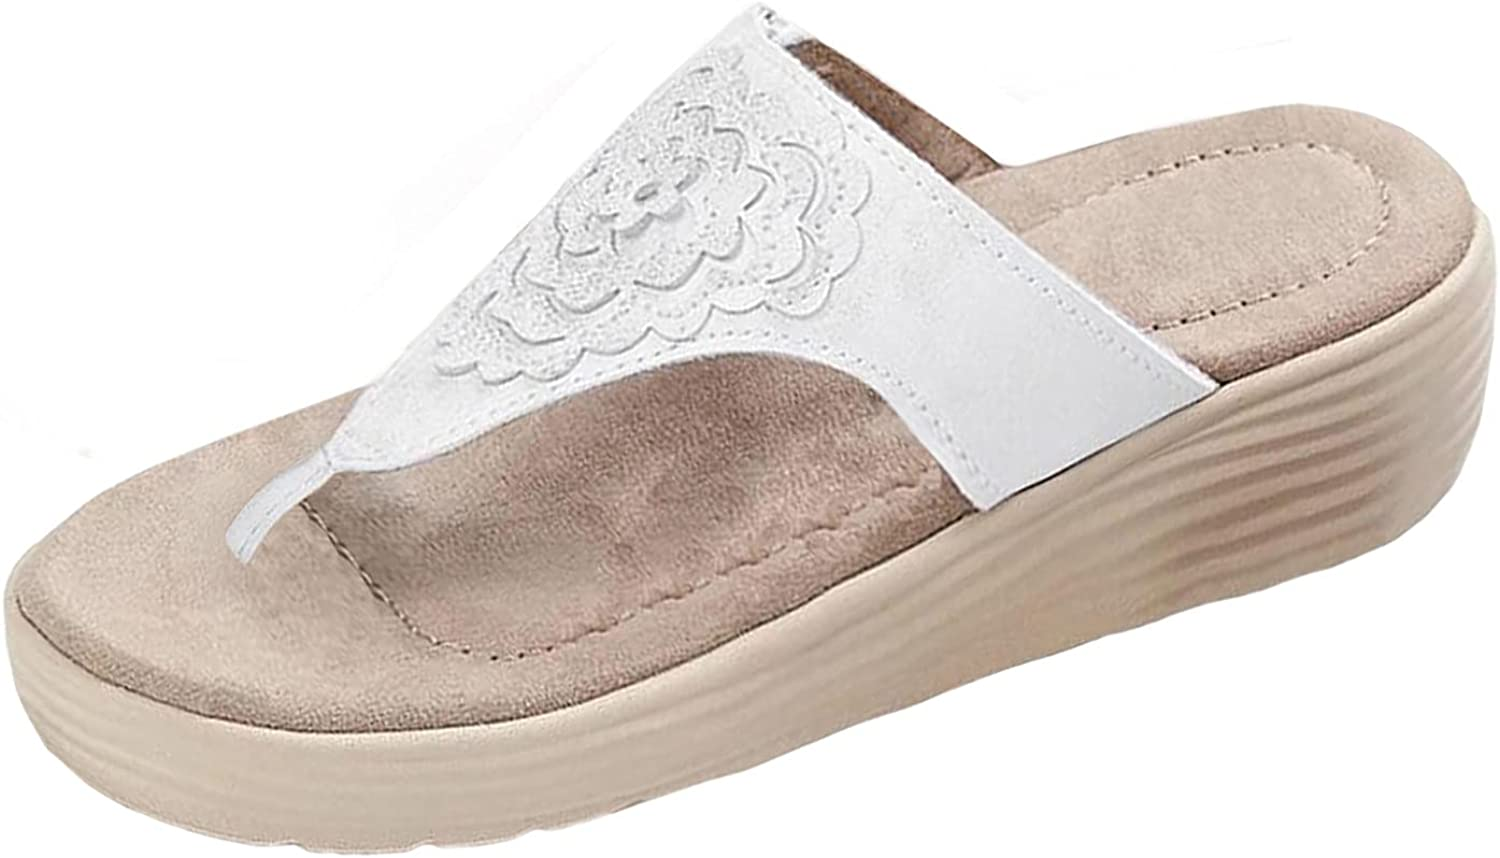 Wedge Sandals for Women with Arch Support Summer Flip Flops Wome